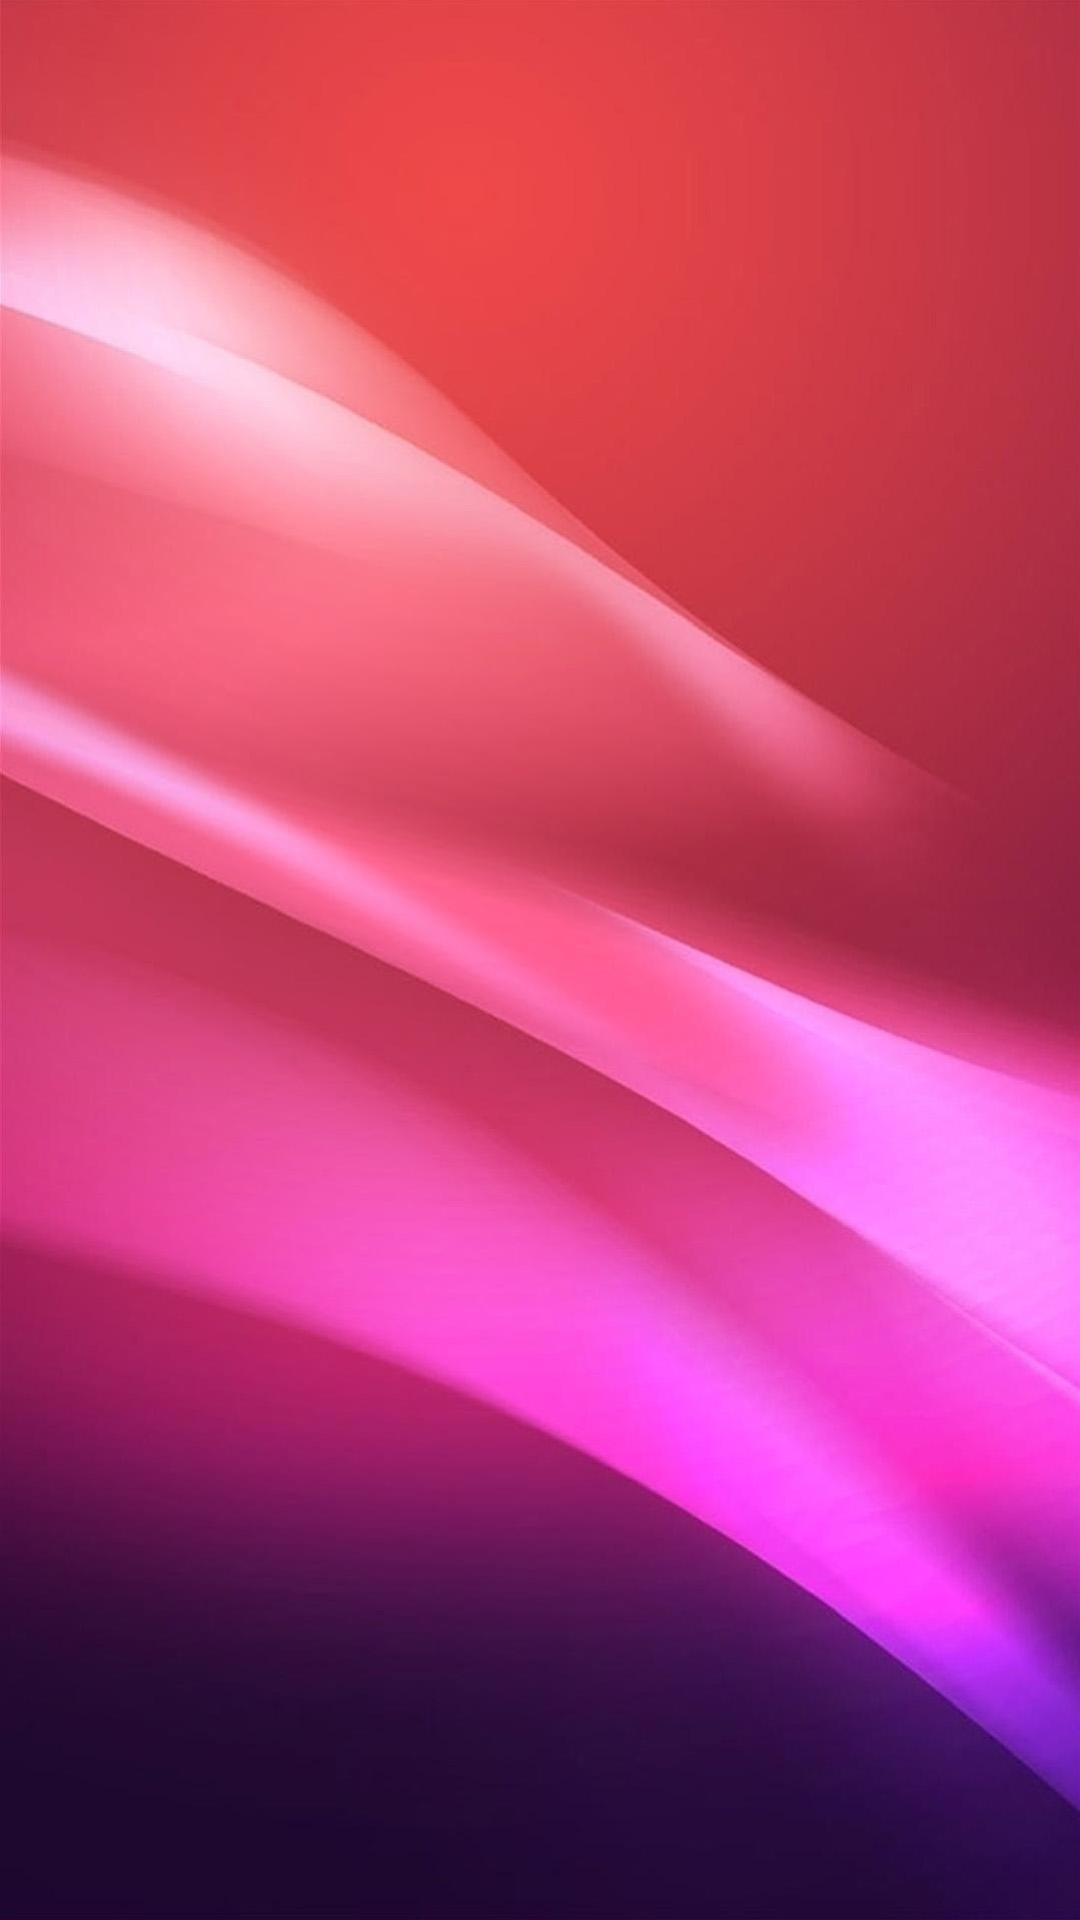 samsung wallpapers hd s6